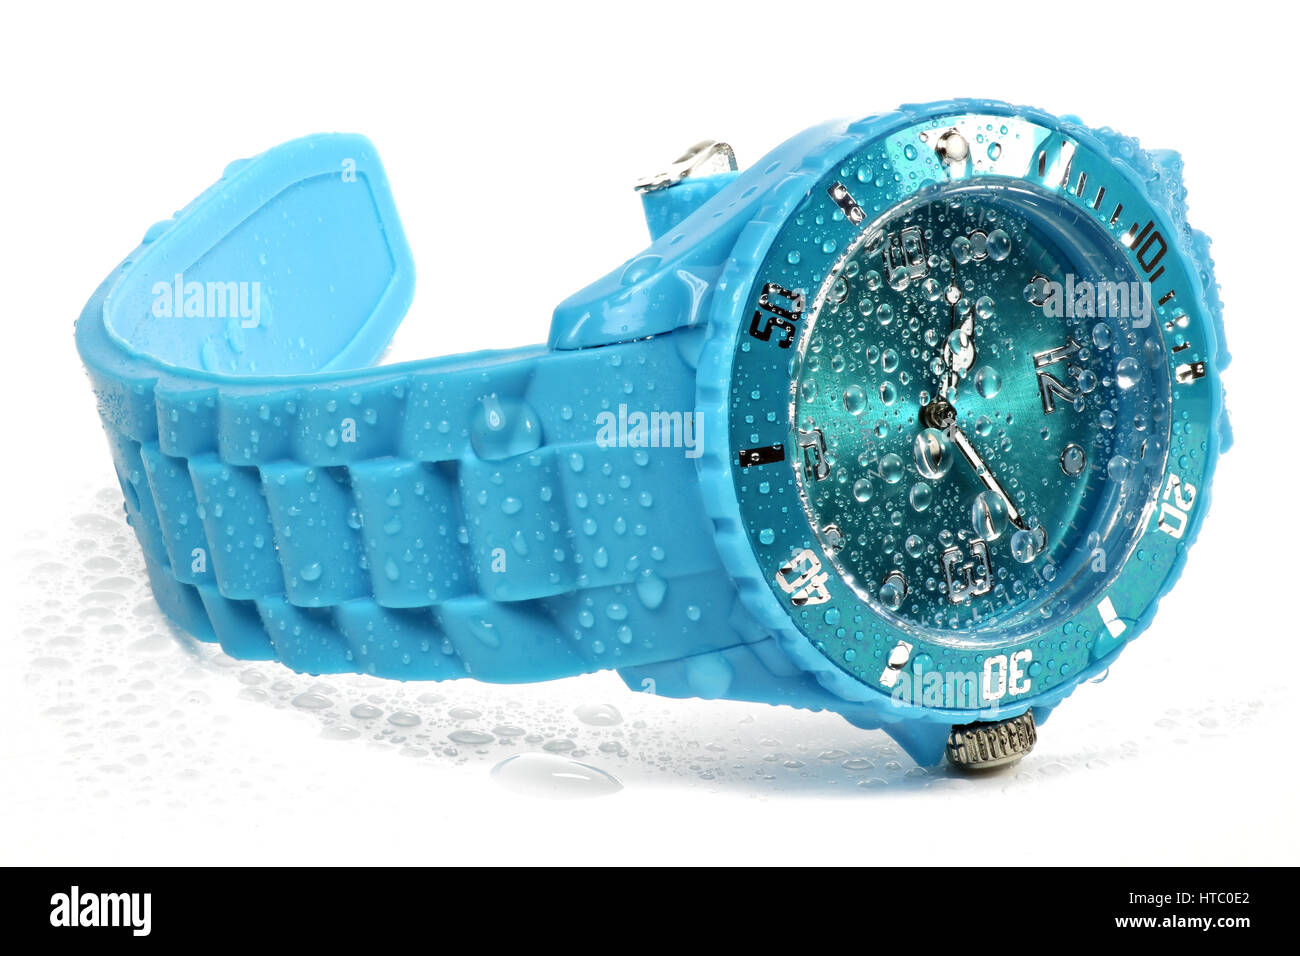 wet blue wristwatch isolated on white background - Stock Image